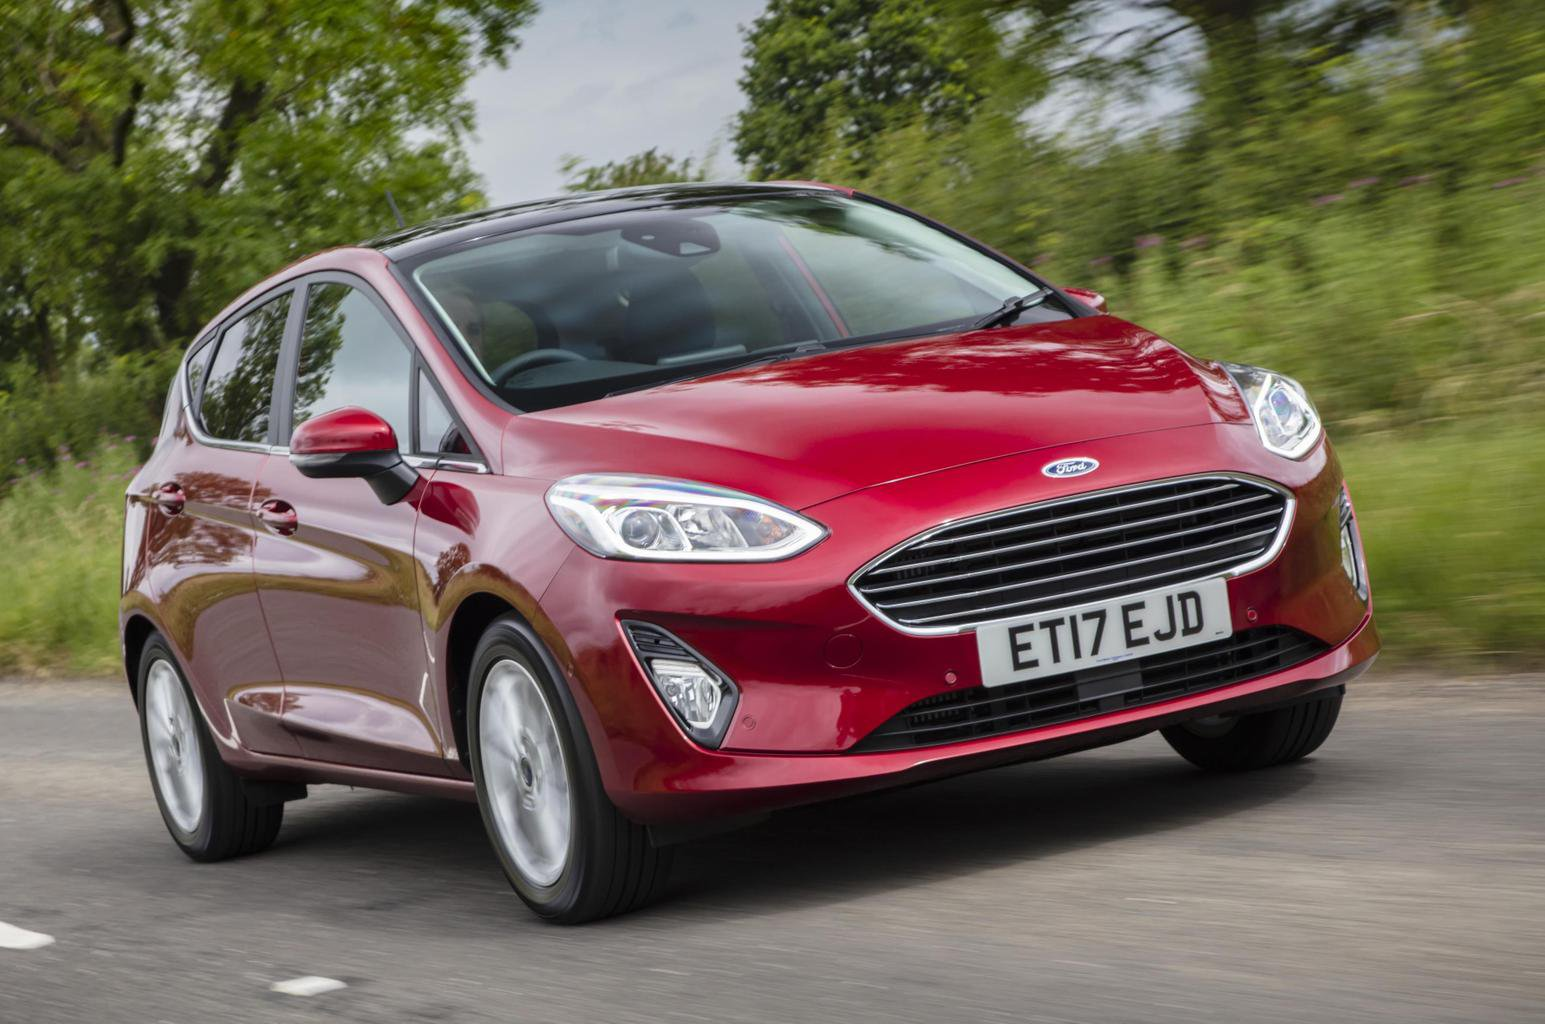 2017 Ford Fiesta 1.0 Ecoboost 100 review - price, specs and release date